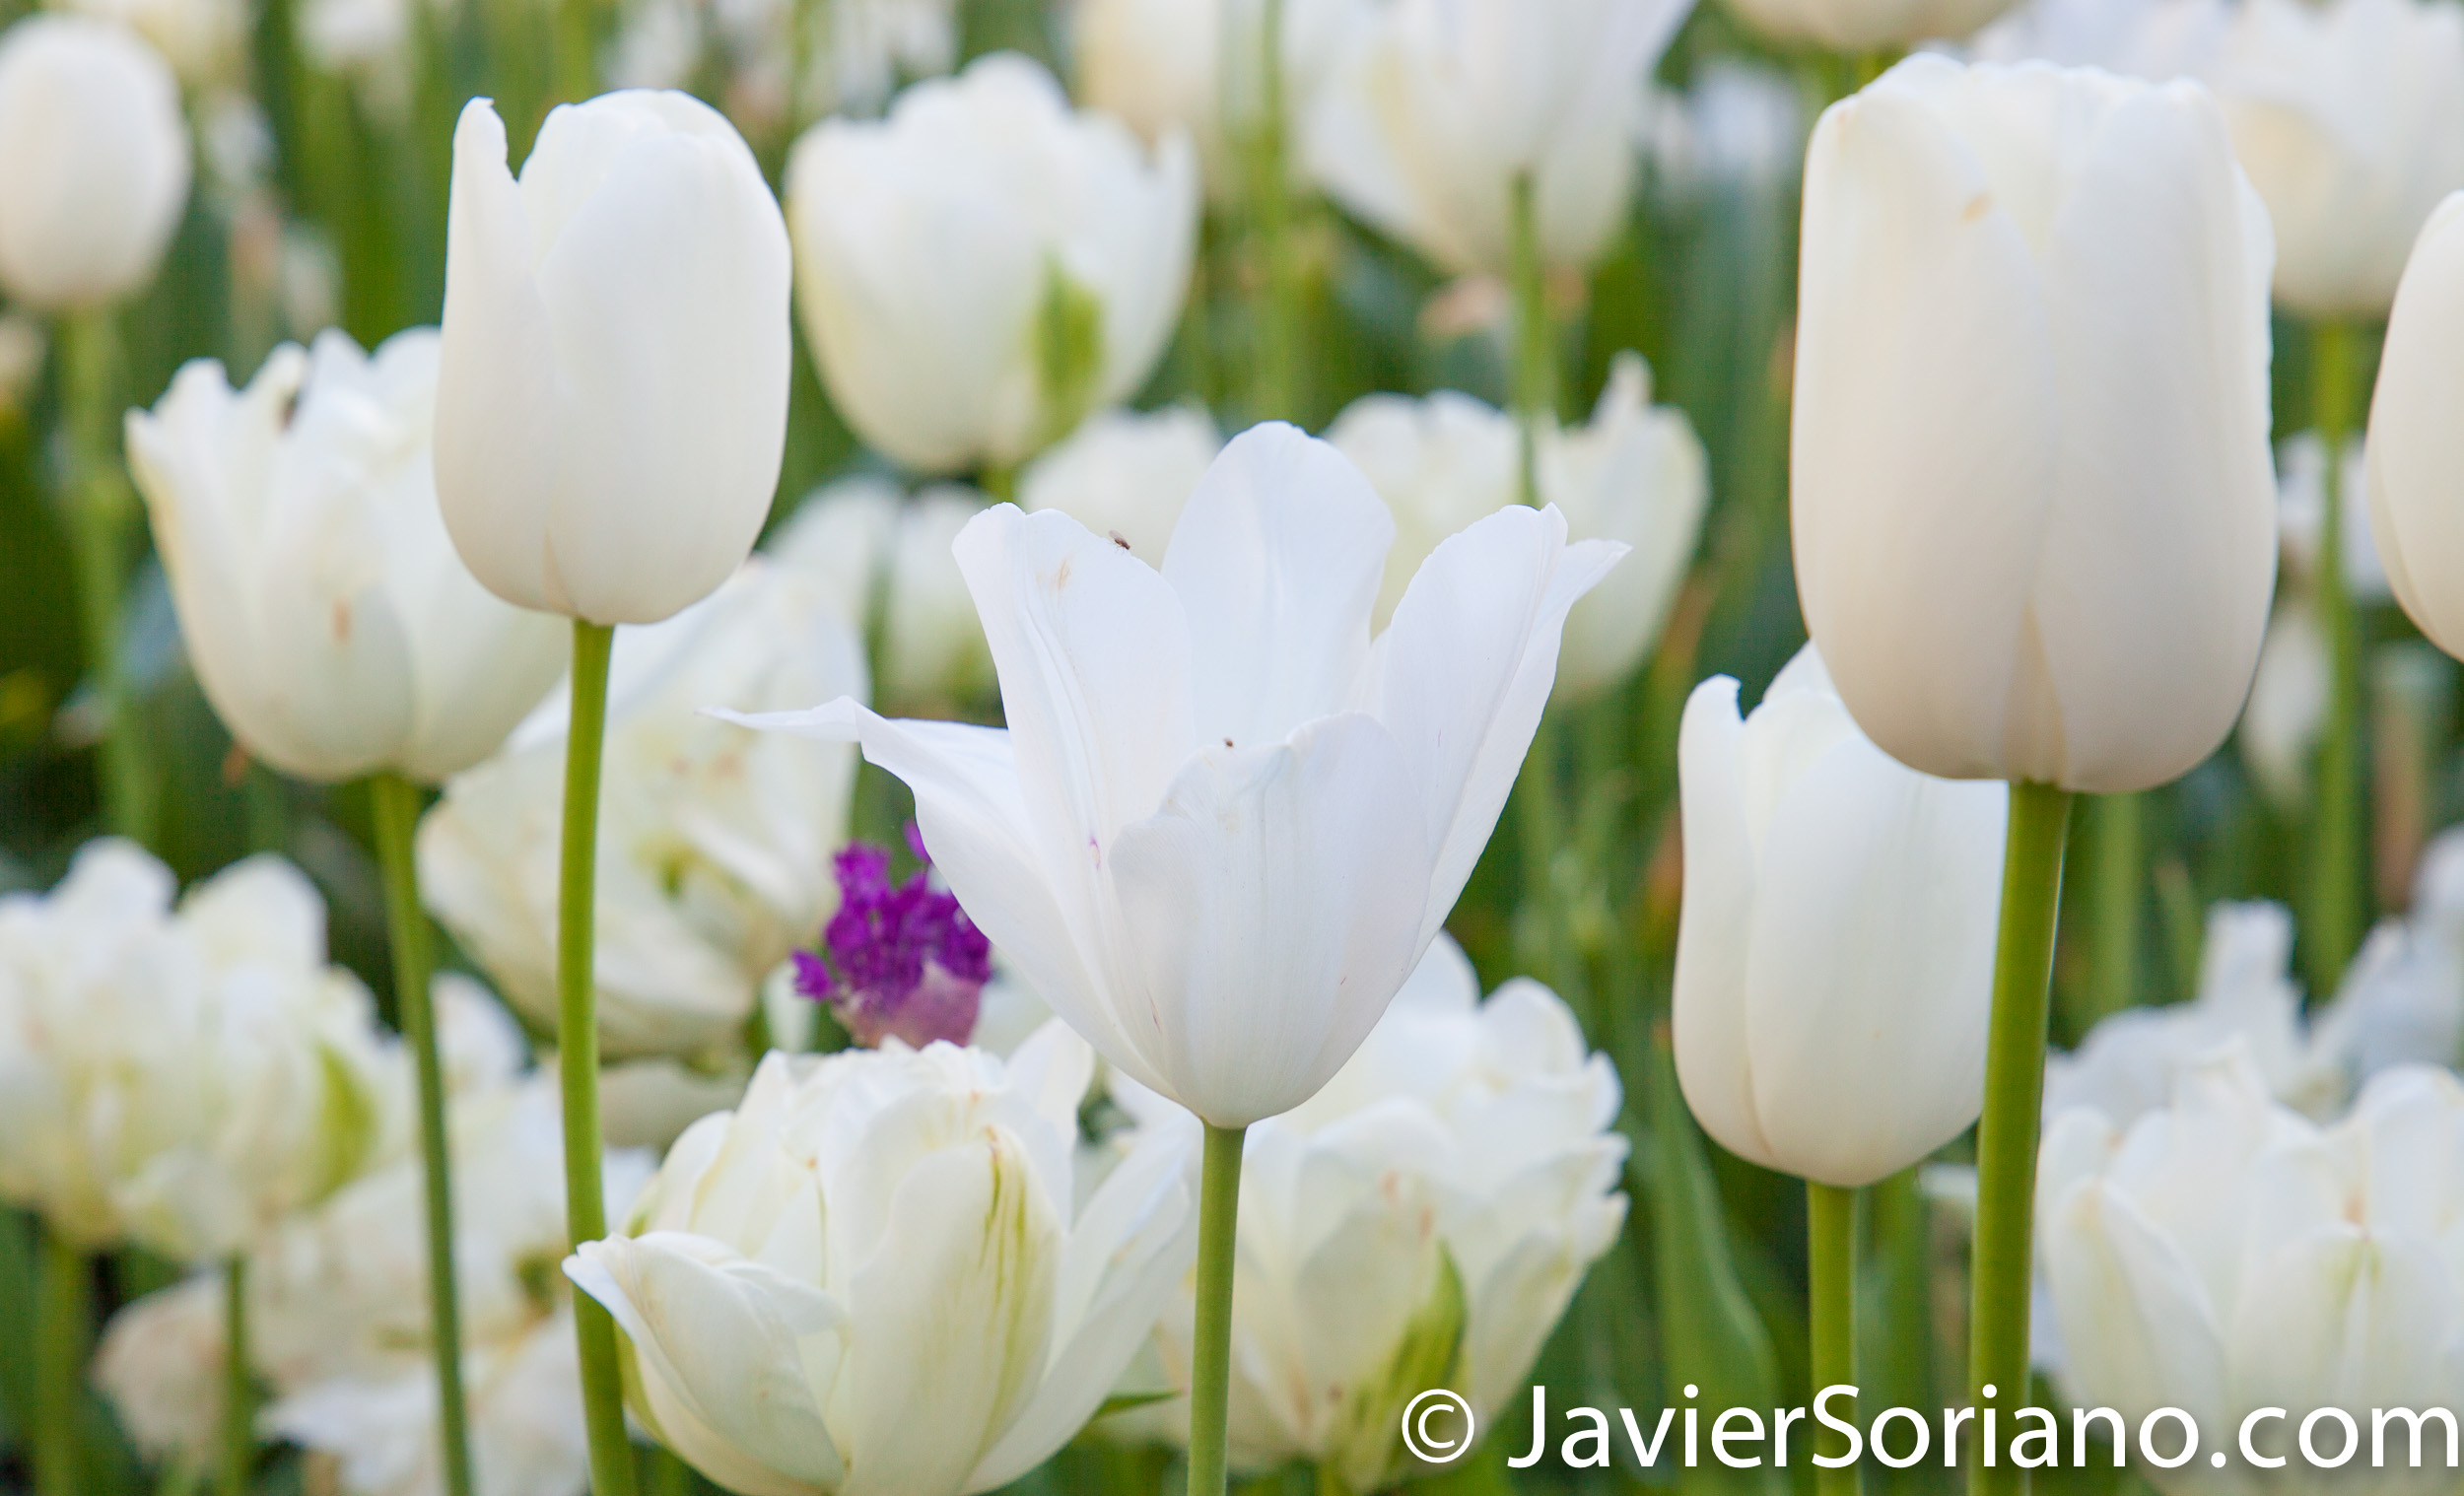 May 2, 2017 NYC - Beautiful white tulips at the Brooklyn Botanic Garden/Hermosos tulipanes blancos en el Jardín Botánico de Brooklyn. Photo by Javier Soriano/www.JavierSoriano.com